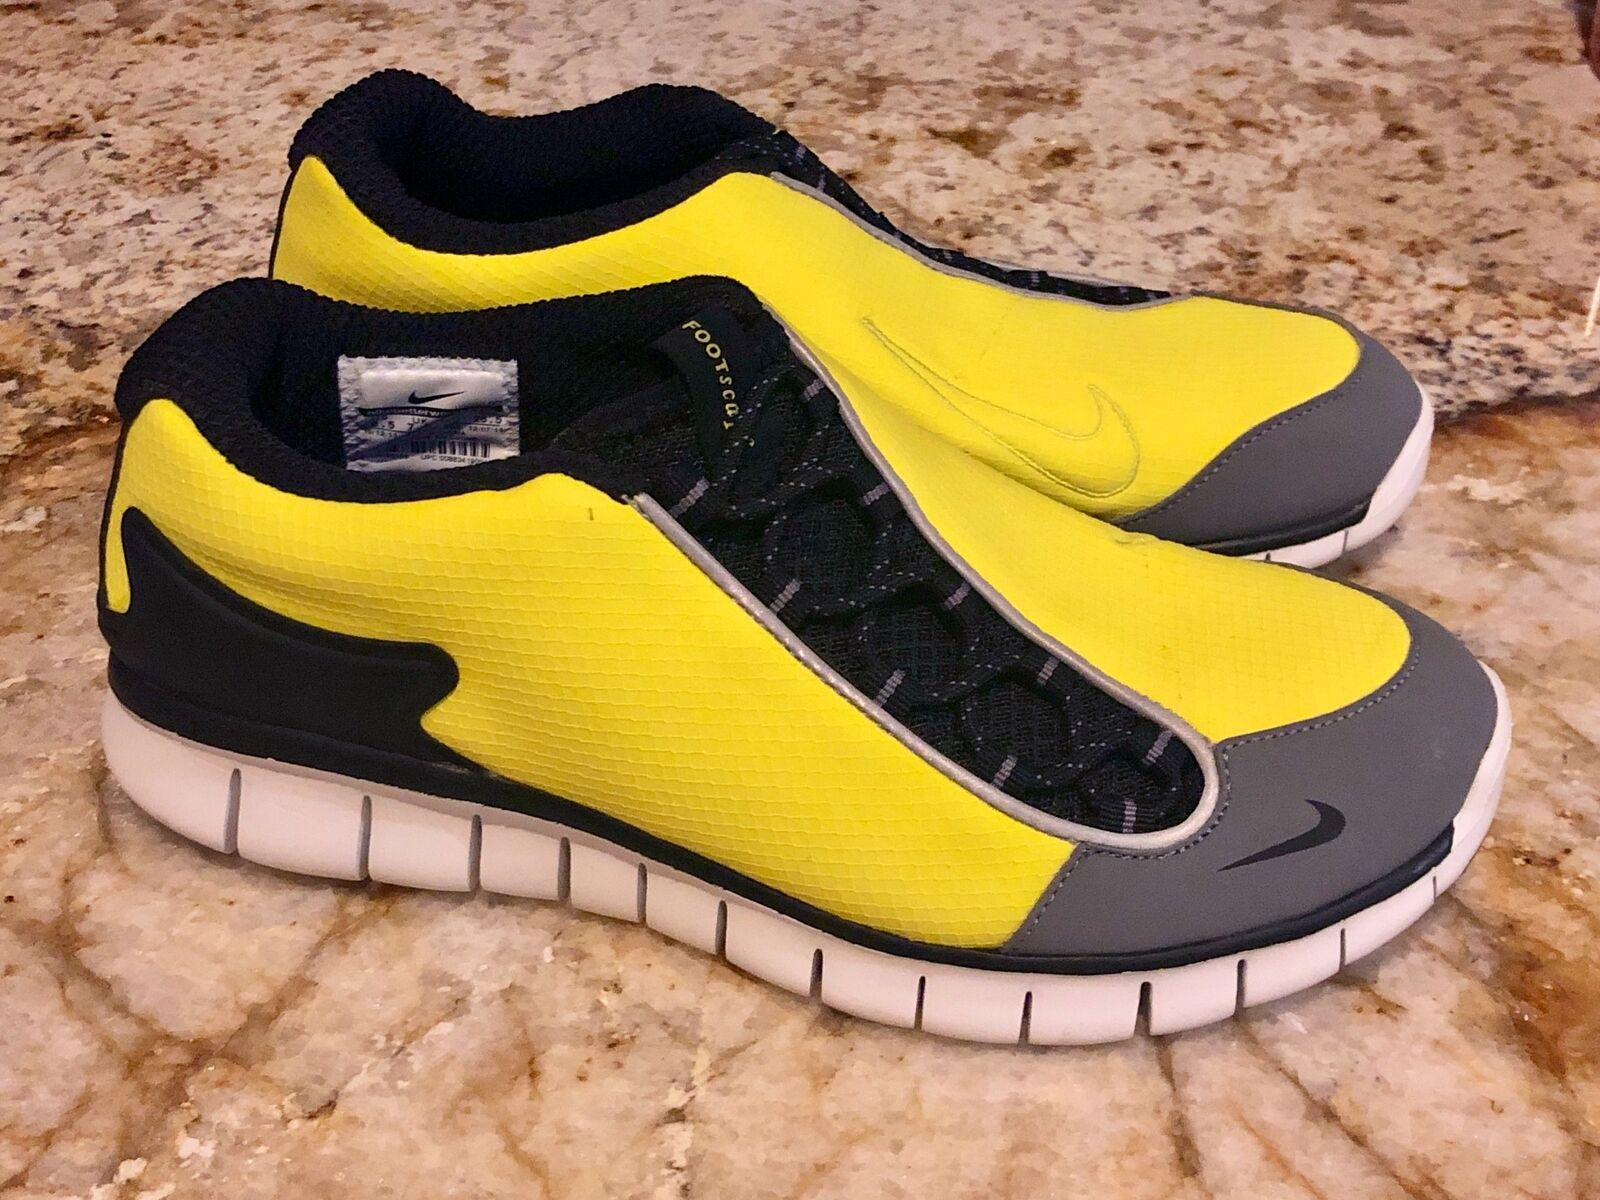 NIKE Footscape Free Electrolime Yellow Black Running shoes Sneakers Mens Sz 8.5